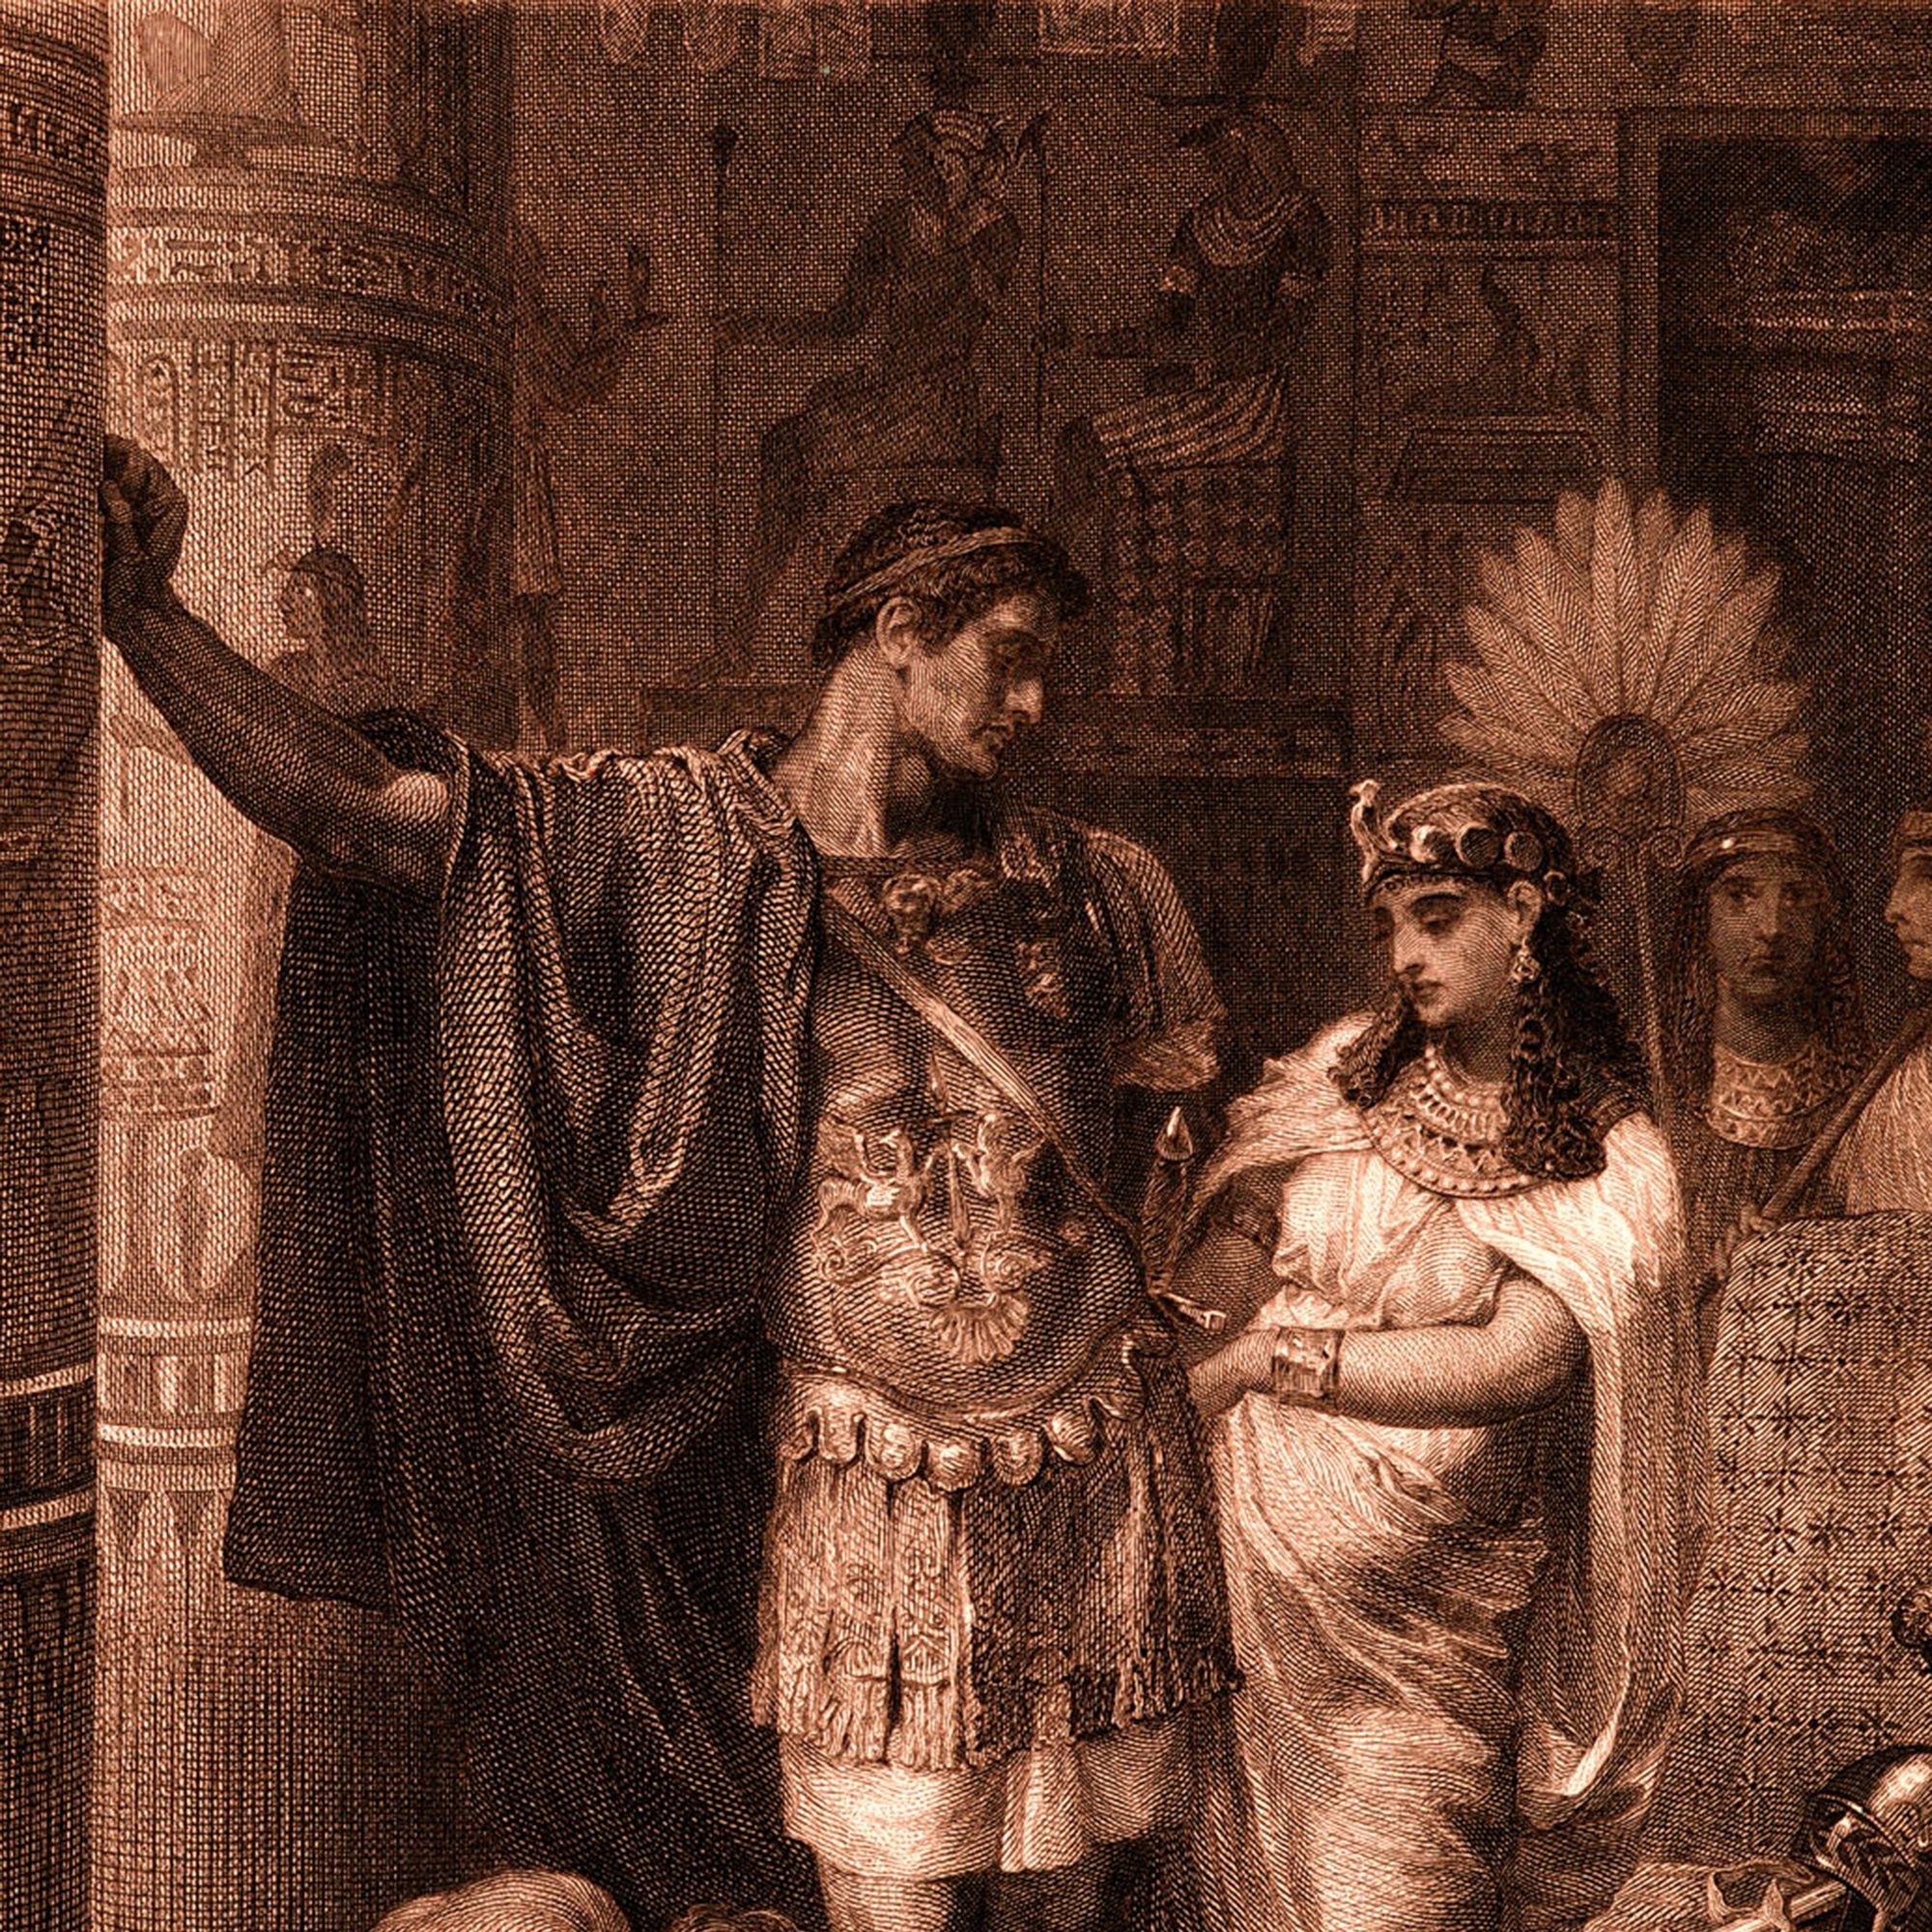 William Shakespeare 's play 'Antony and Cleopatra' (Act III, Scene 11). 'Antony: 'Fall not a tear,  I say&#x3B; one of them rates. All that is won and lost: give me a kiss&#x3B;   Even this repays me.'  Painted by Frank Dicksee, engraved by G. Goldberg. WS:l. English poet and playwright baptised 26 April 1564 – 23 April 1616.  (Photo by Culture Club/Getty Images)